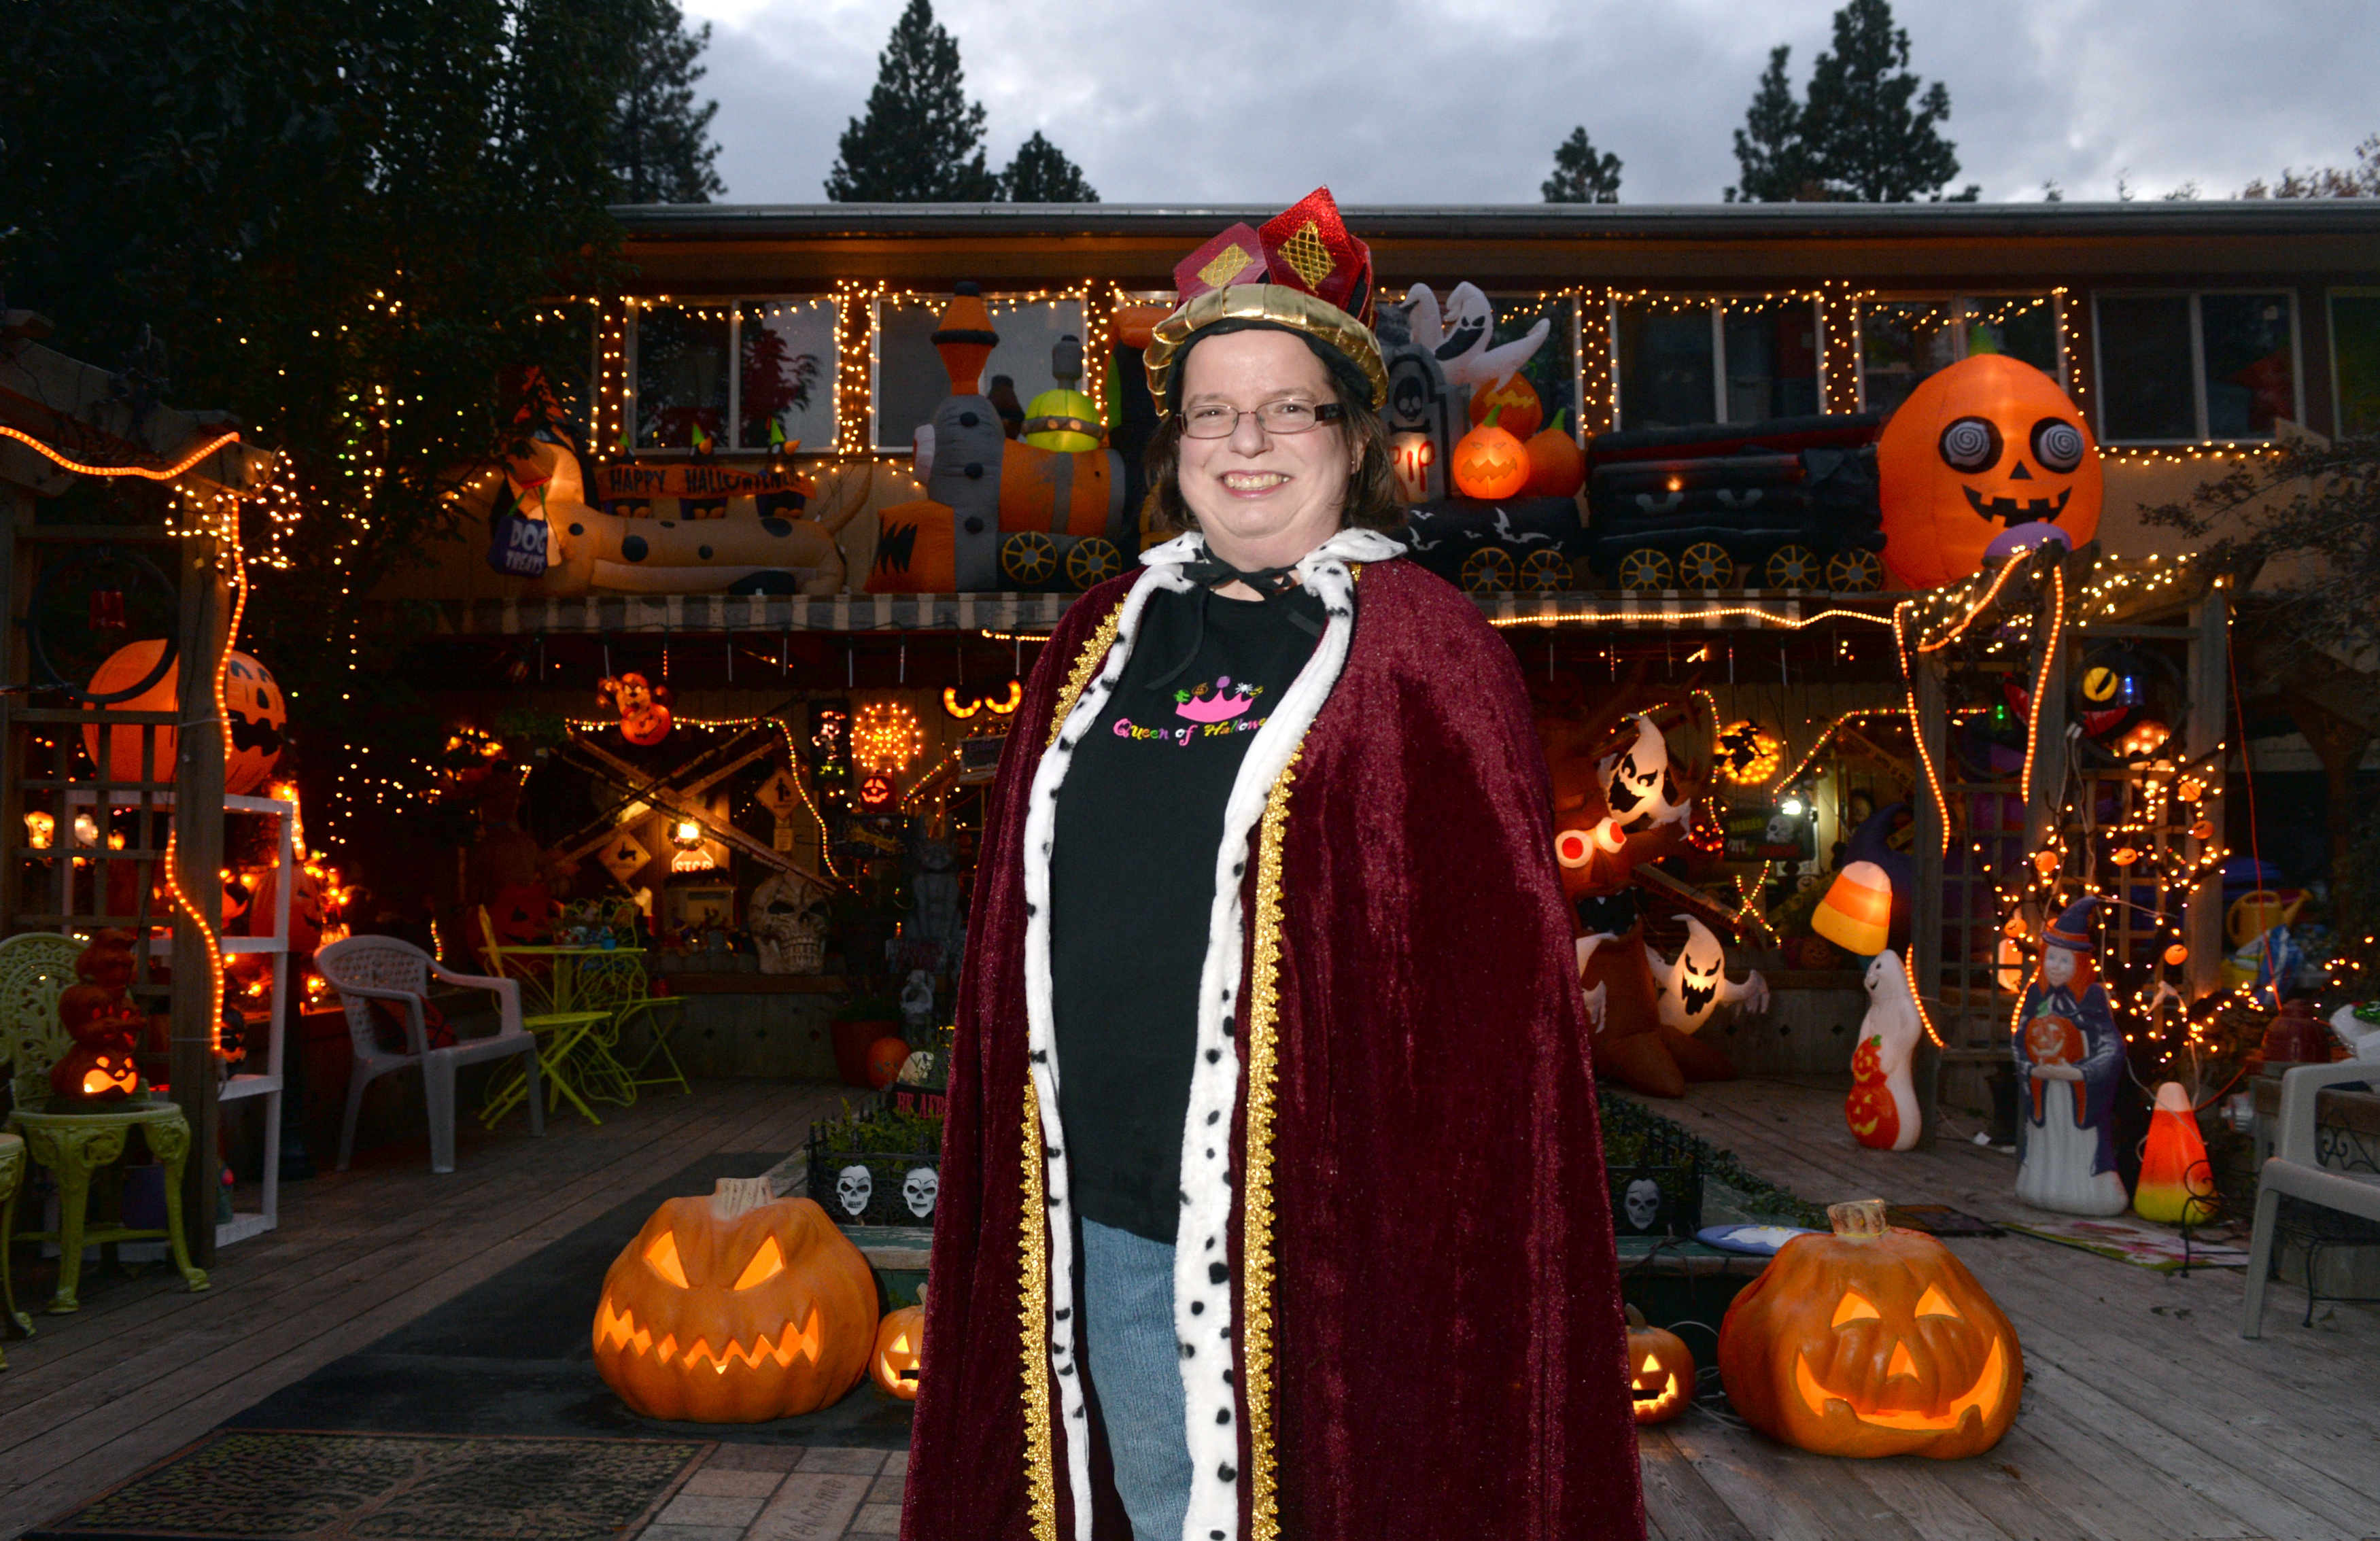 chris sheppard dons only one costume on halloween a robe crown and sweatshirt reading